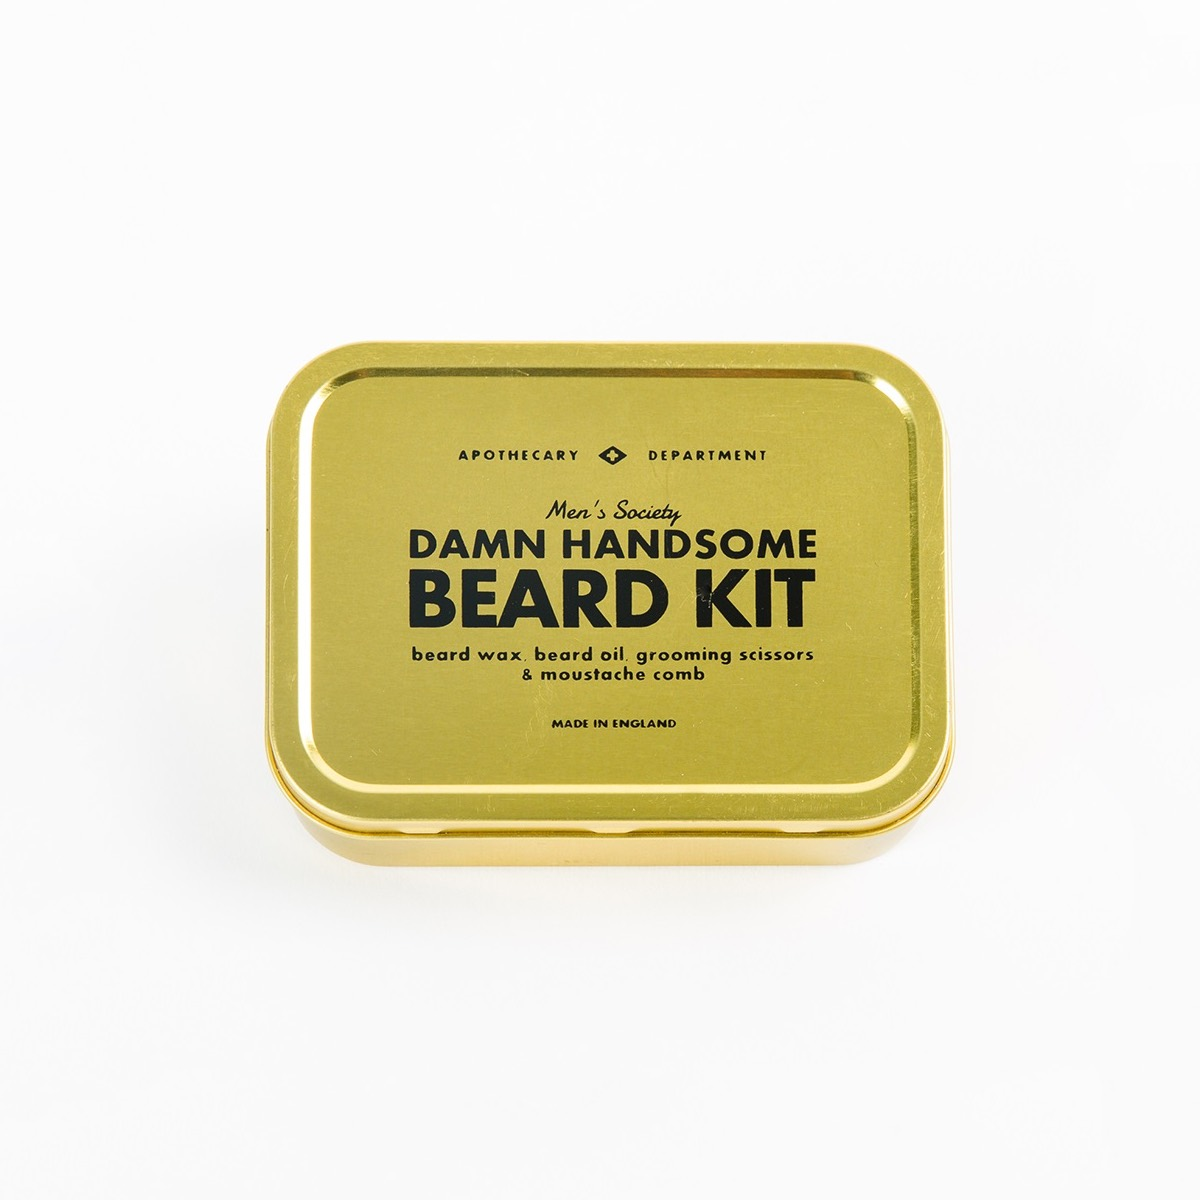 beard grooming kit apothecary paraphernalia. Black Bedroom Furniture Sets. Home Design Ideas